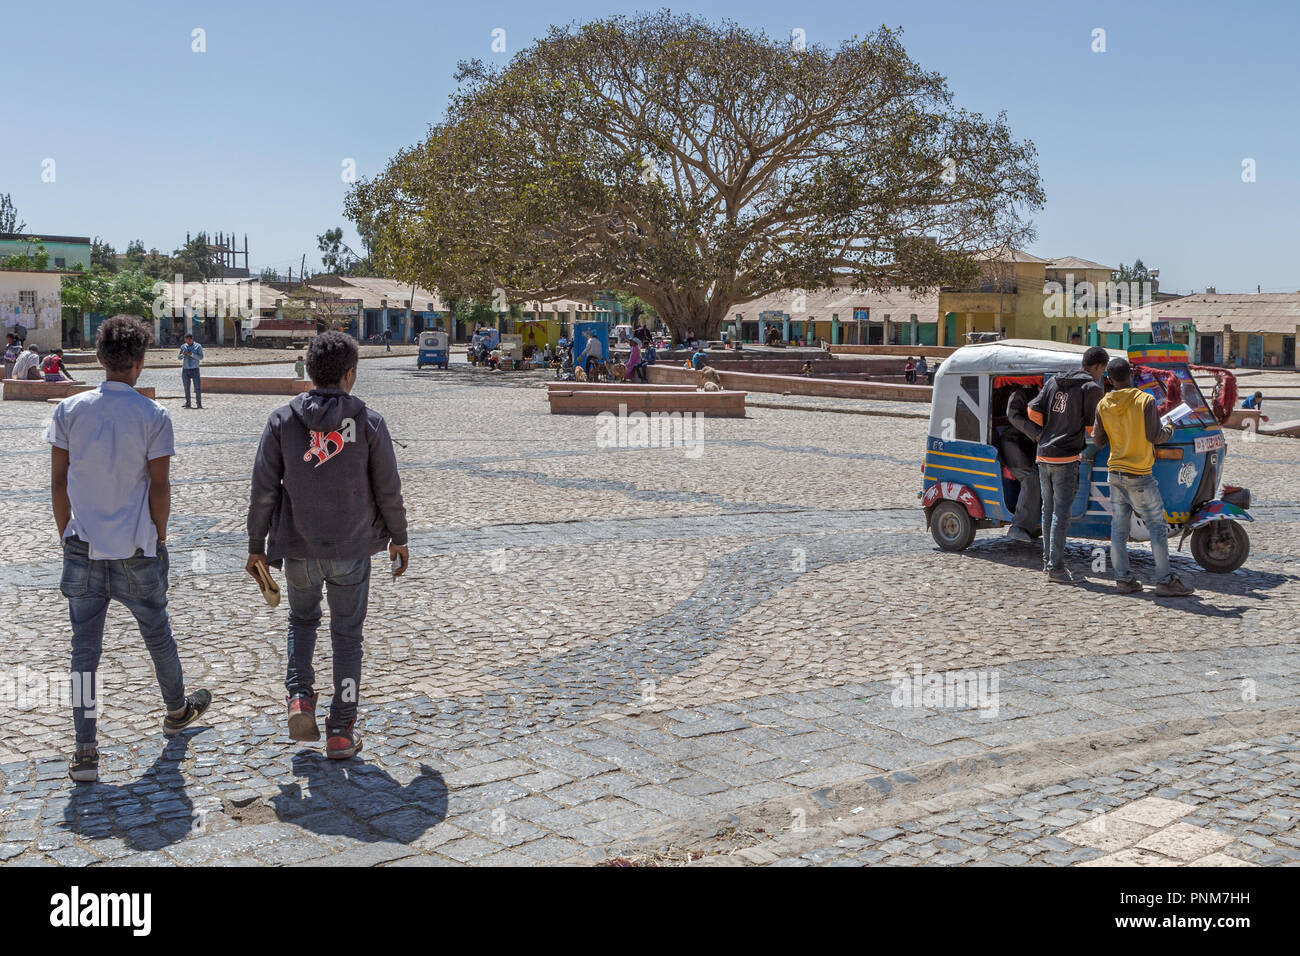 Streets of Axum - central market - main square - old bus station with Tut-tuts known locally as Baja - Stock Image